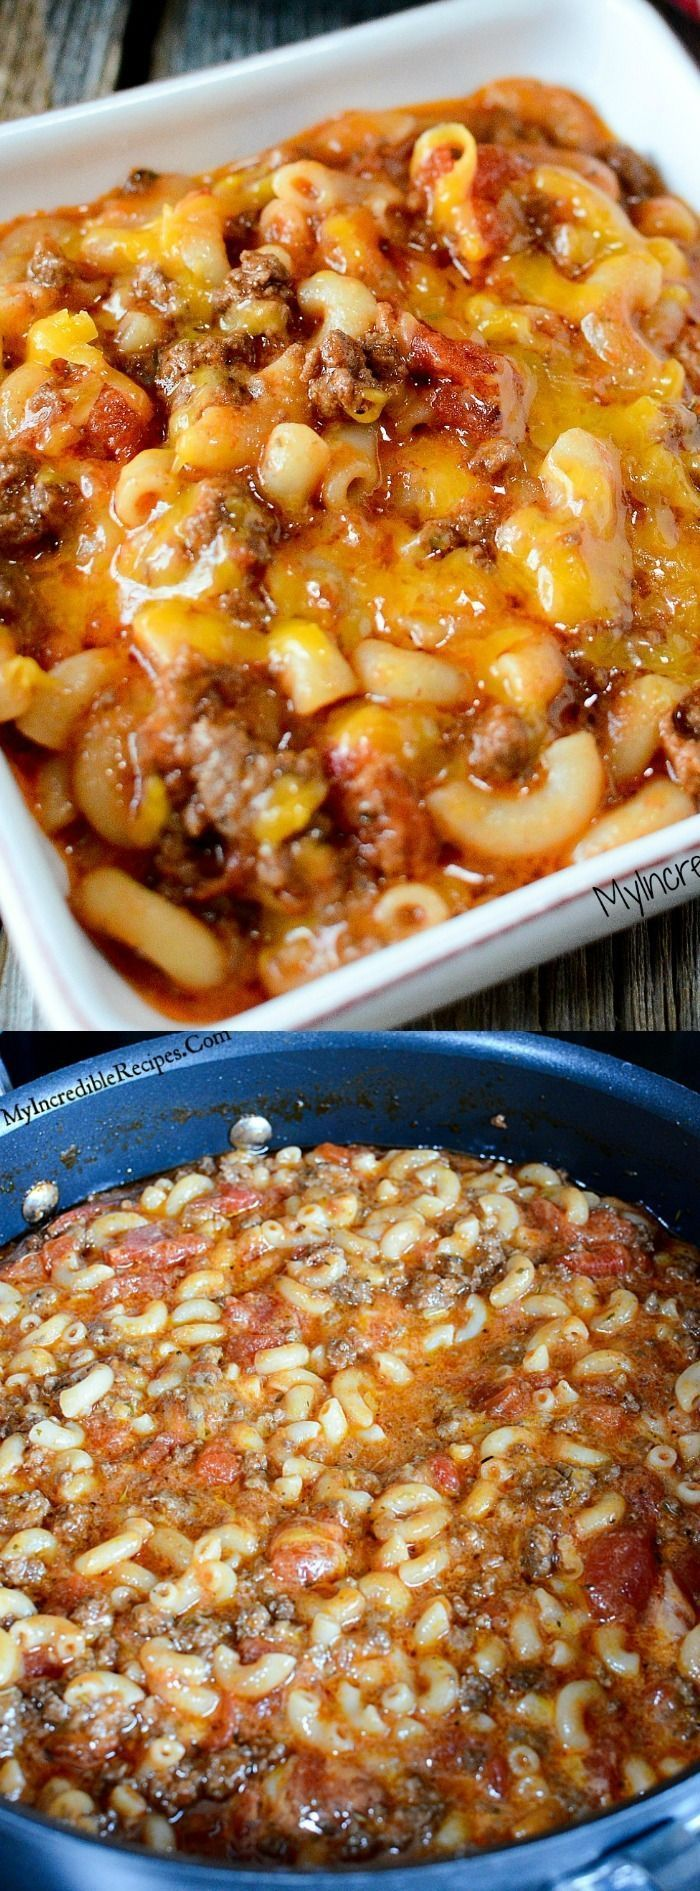 Old Fashioned Goulash - It's beefy, cheesy and filled with pasta goodness. It's the ultimate comfort food that a hungry family will gobble right up!